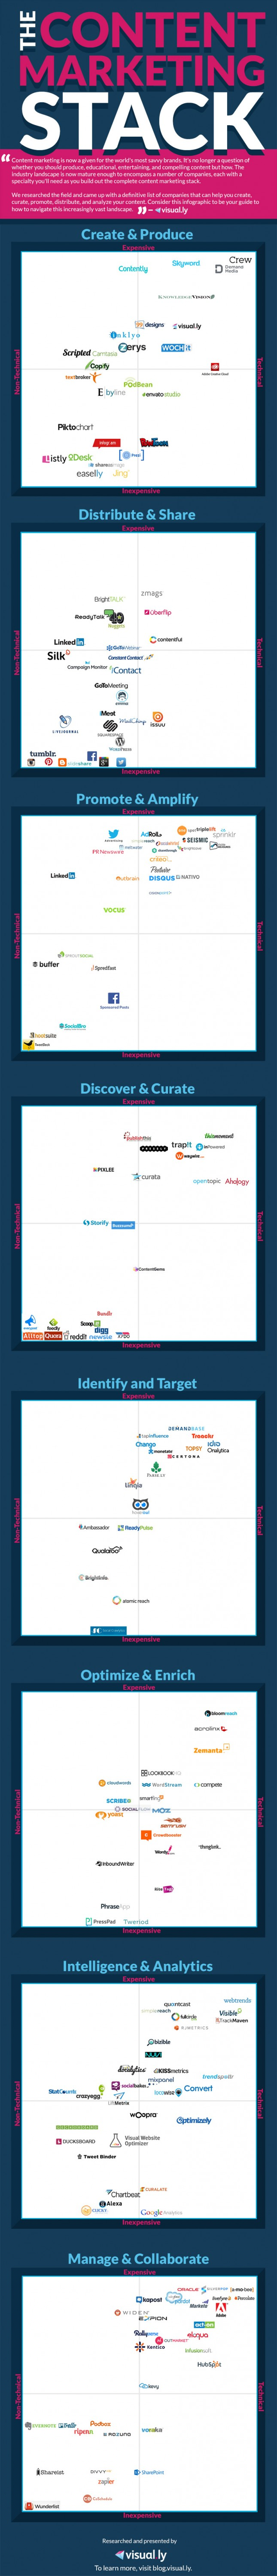 Resource Guide To Content Marketing Companies 2015